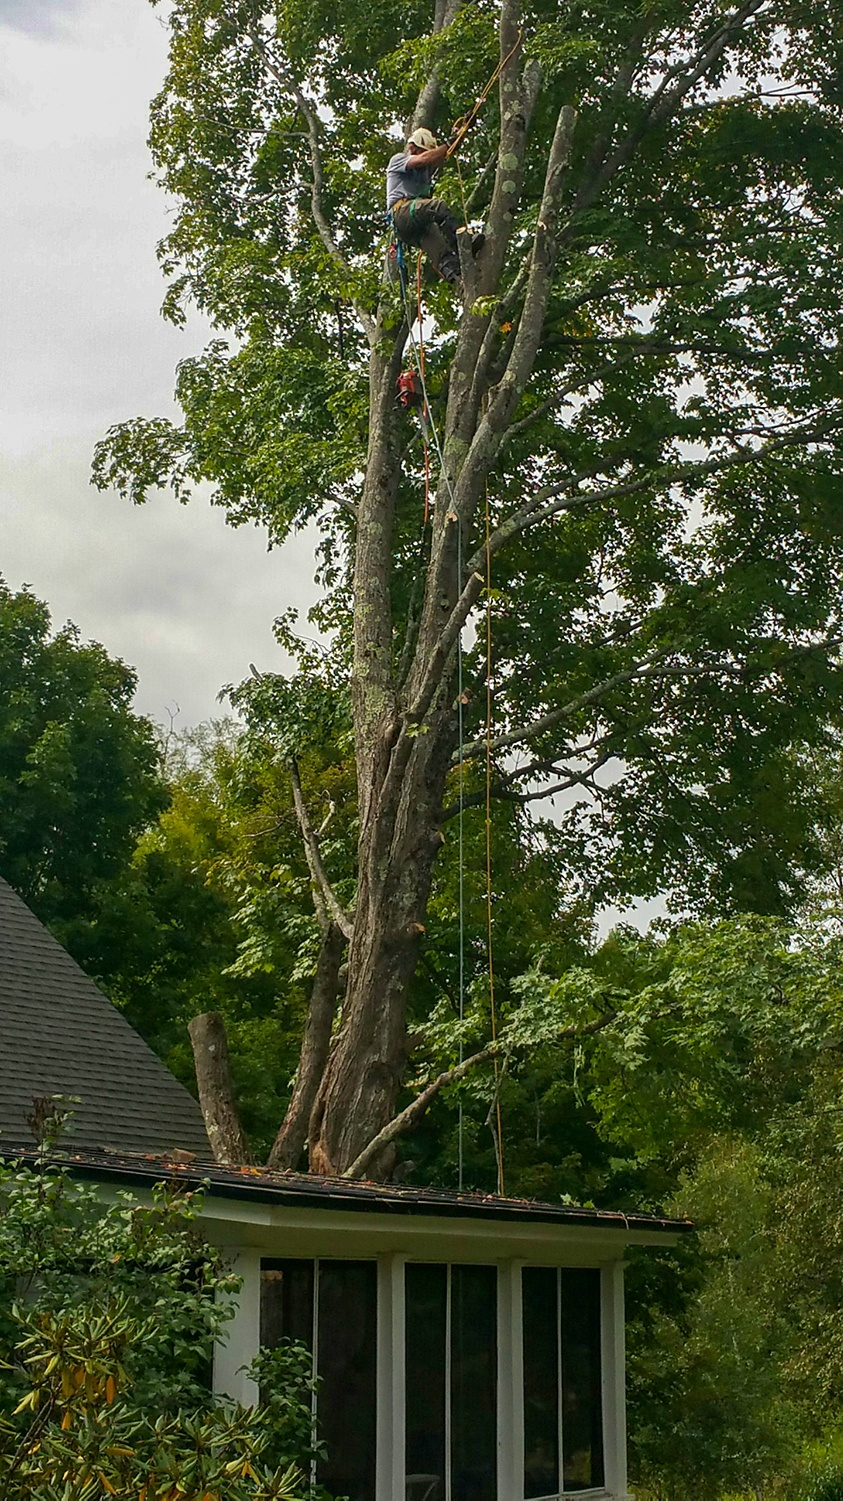 JW Land Clearing doing storm damage cleanup by pulling a tree from the roof of a home